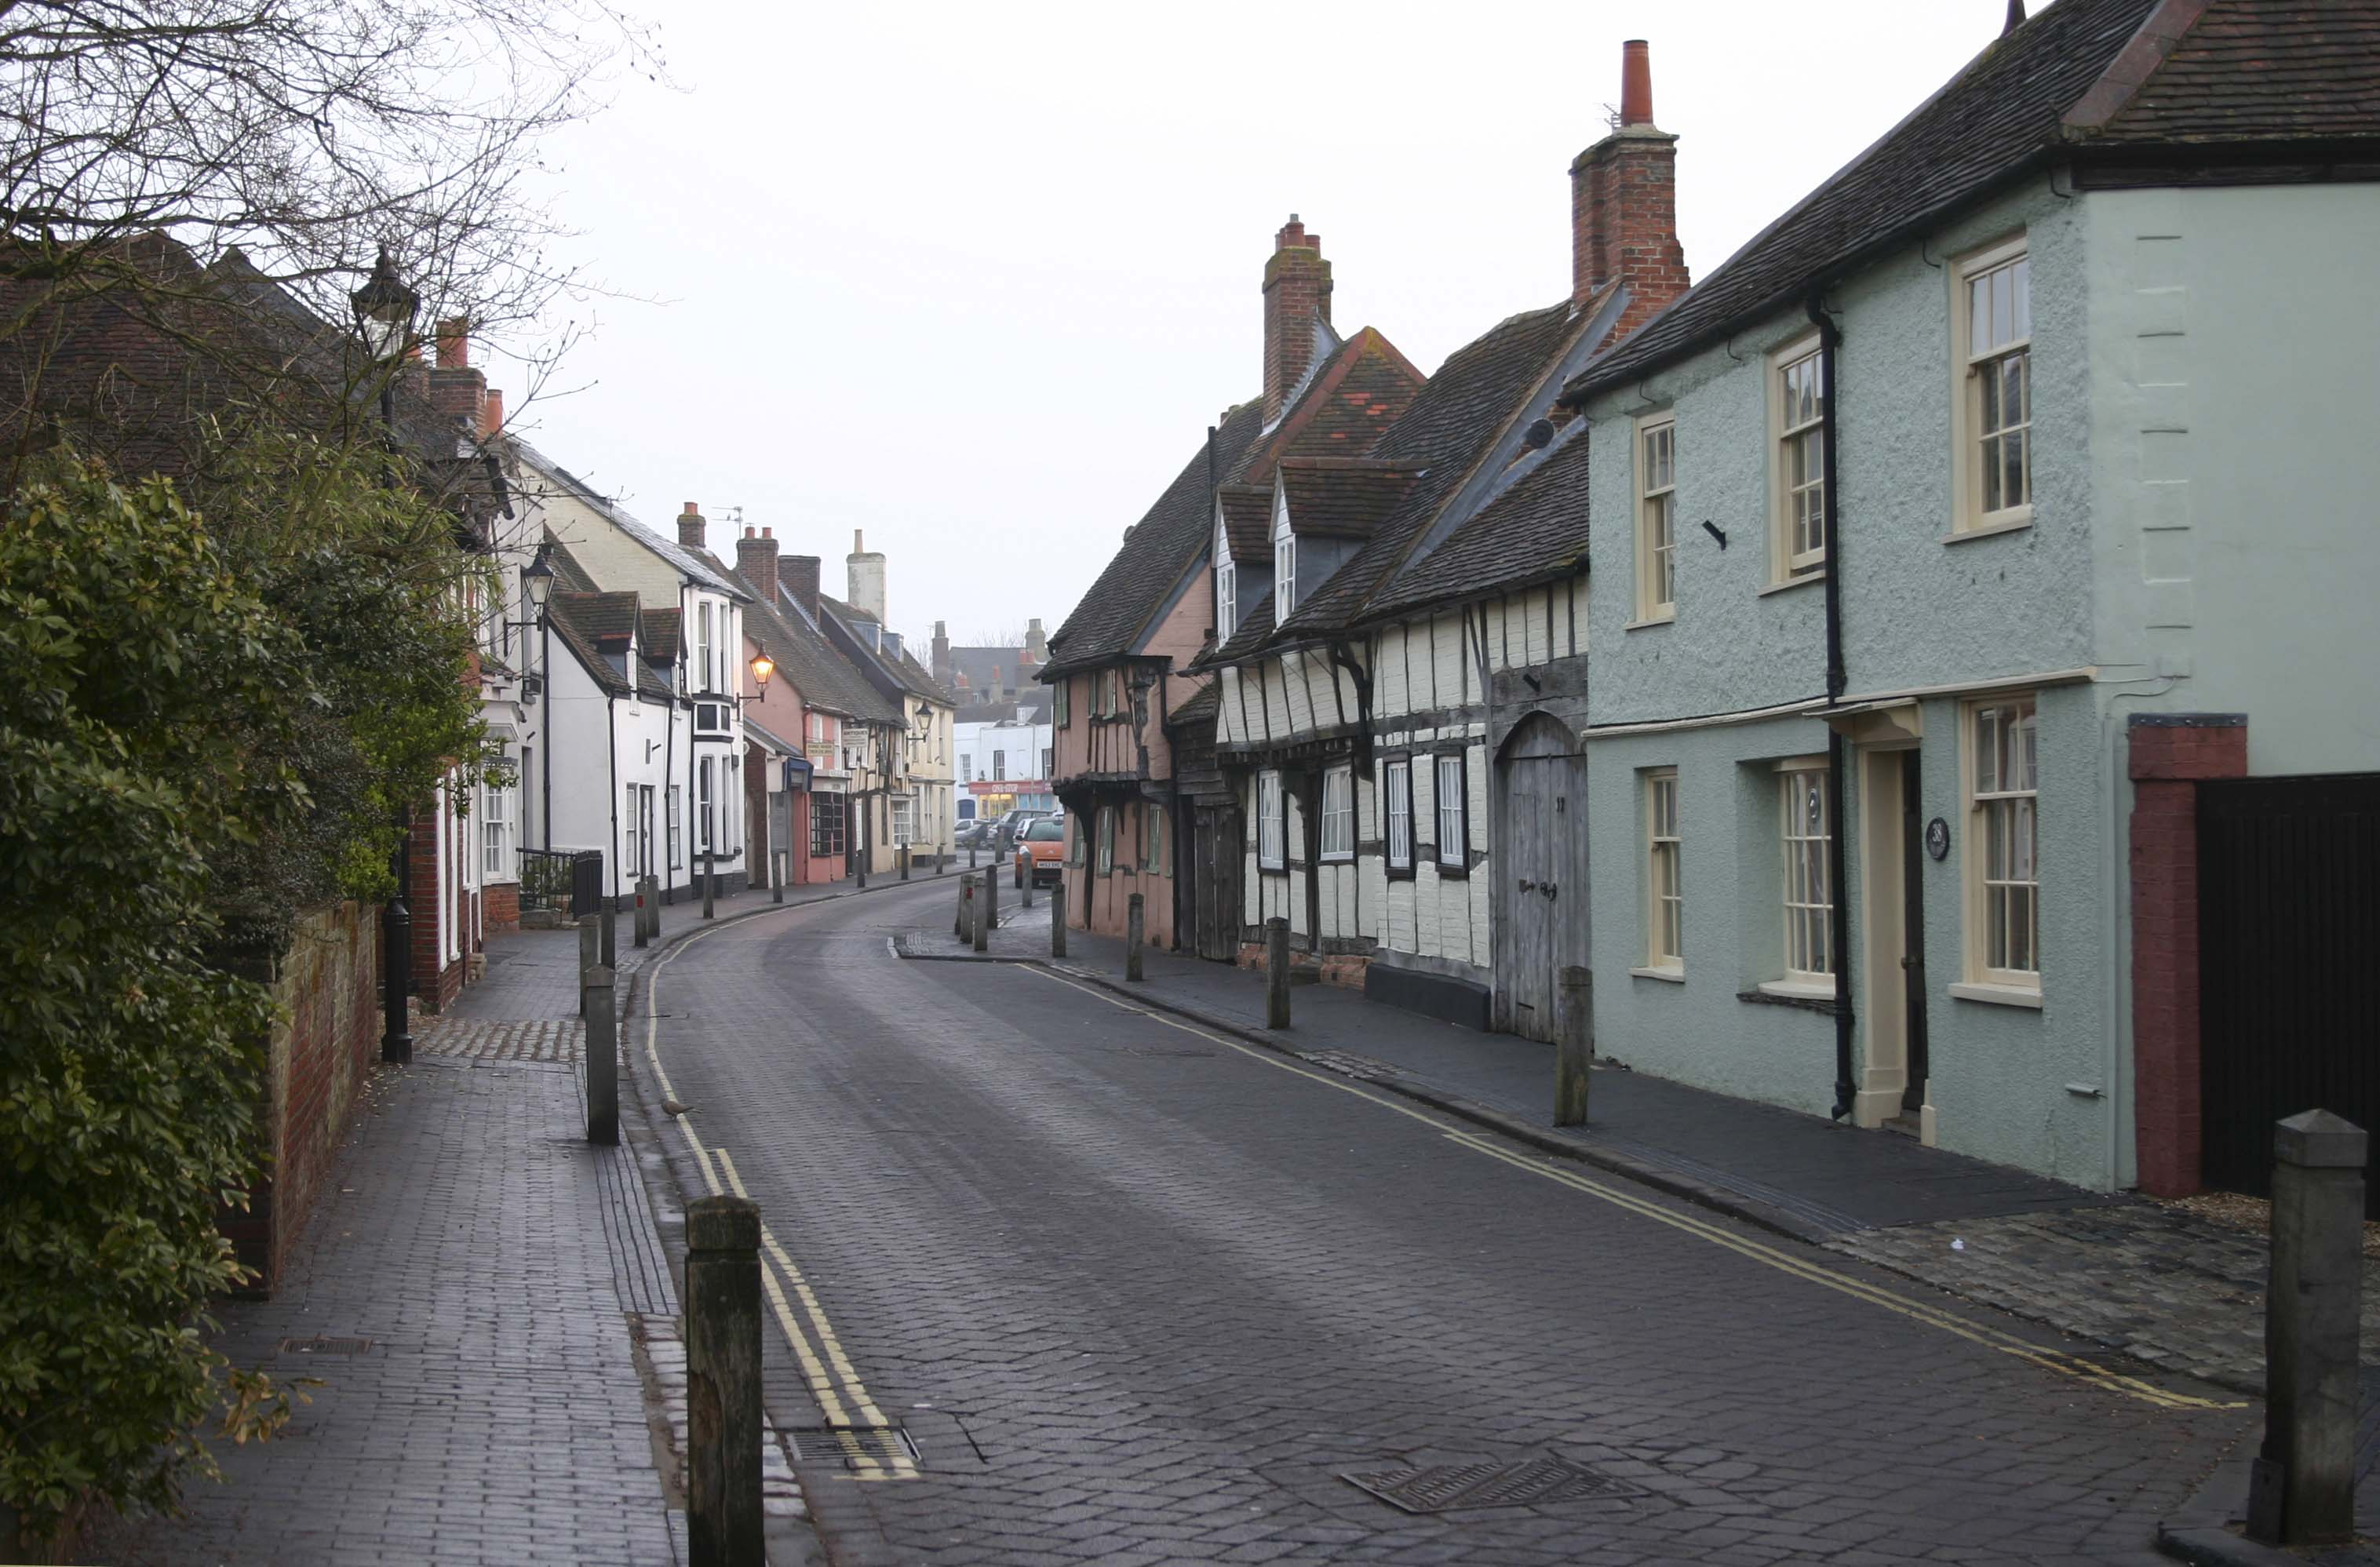 Titchfield South Street - THE MOST BEAUTIFUL ENGLISH VILLAGES PICTURES STUNNING ENGLISH COUNTRY TOWNS IMAGES